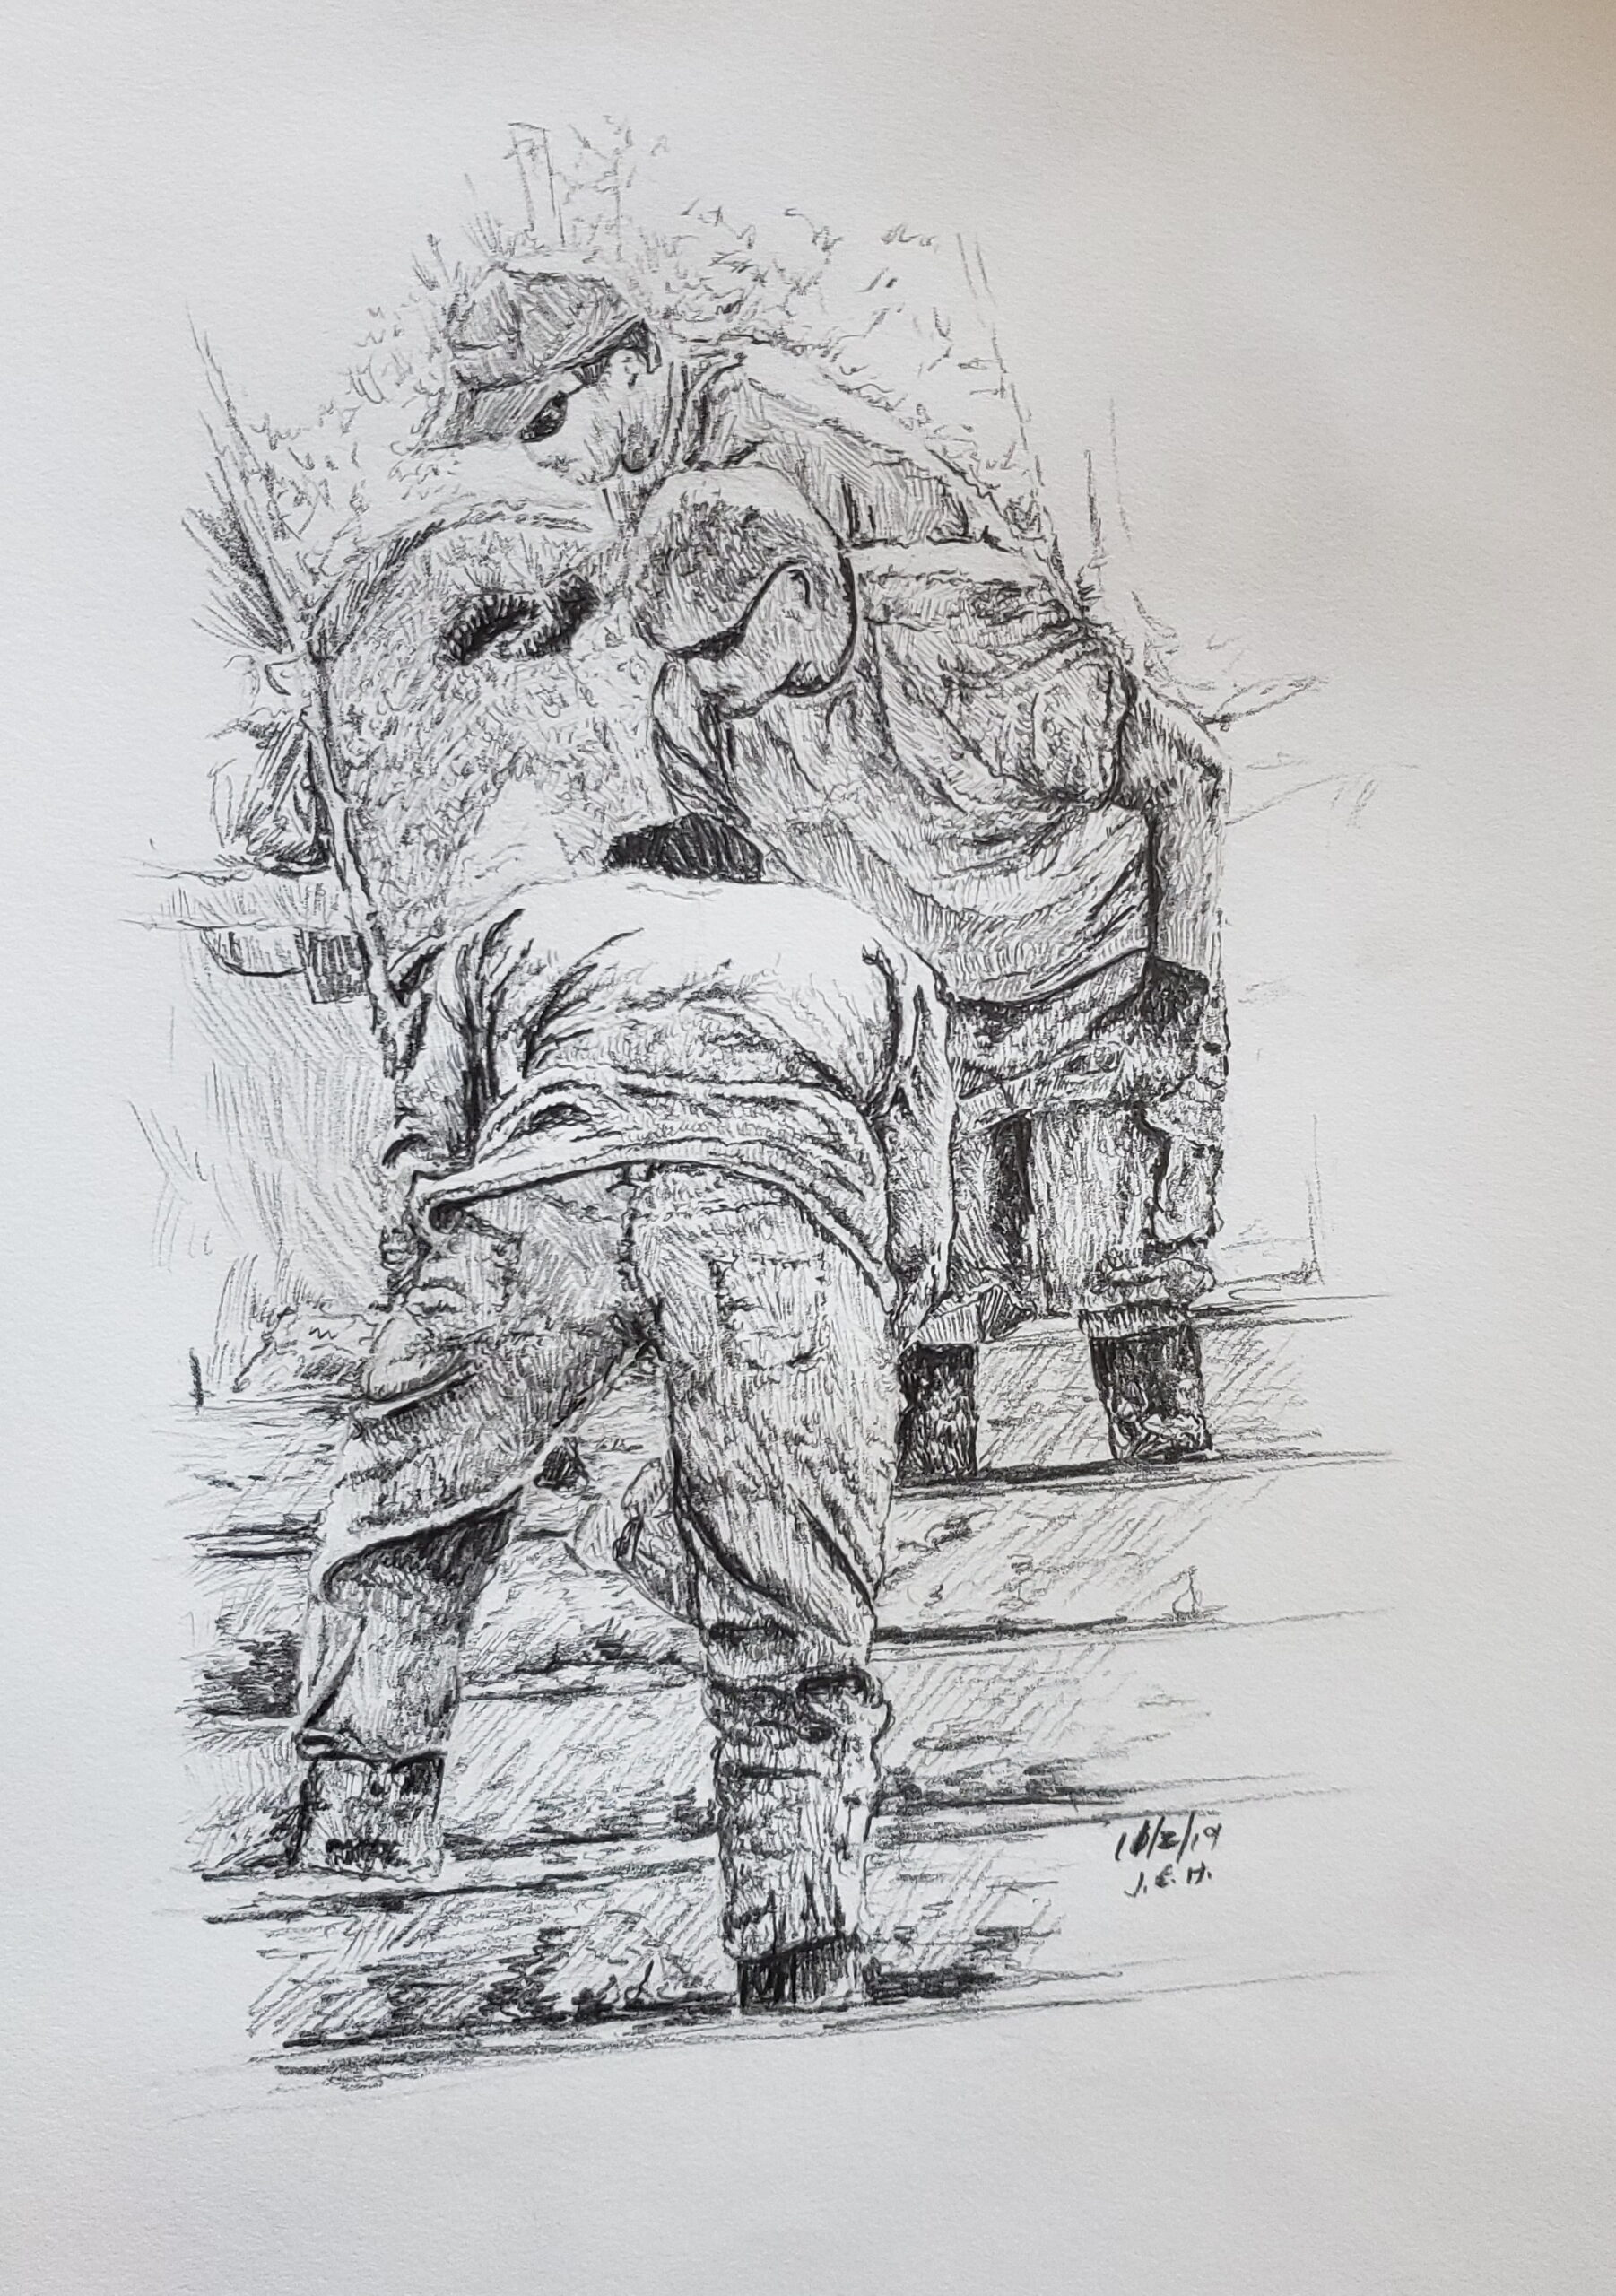 Pencil sketch by John Huisman